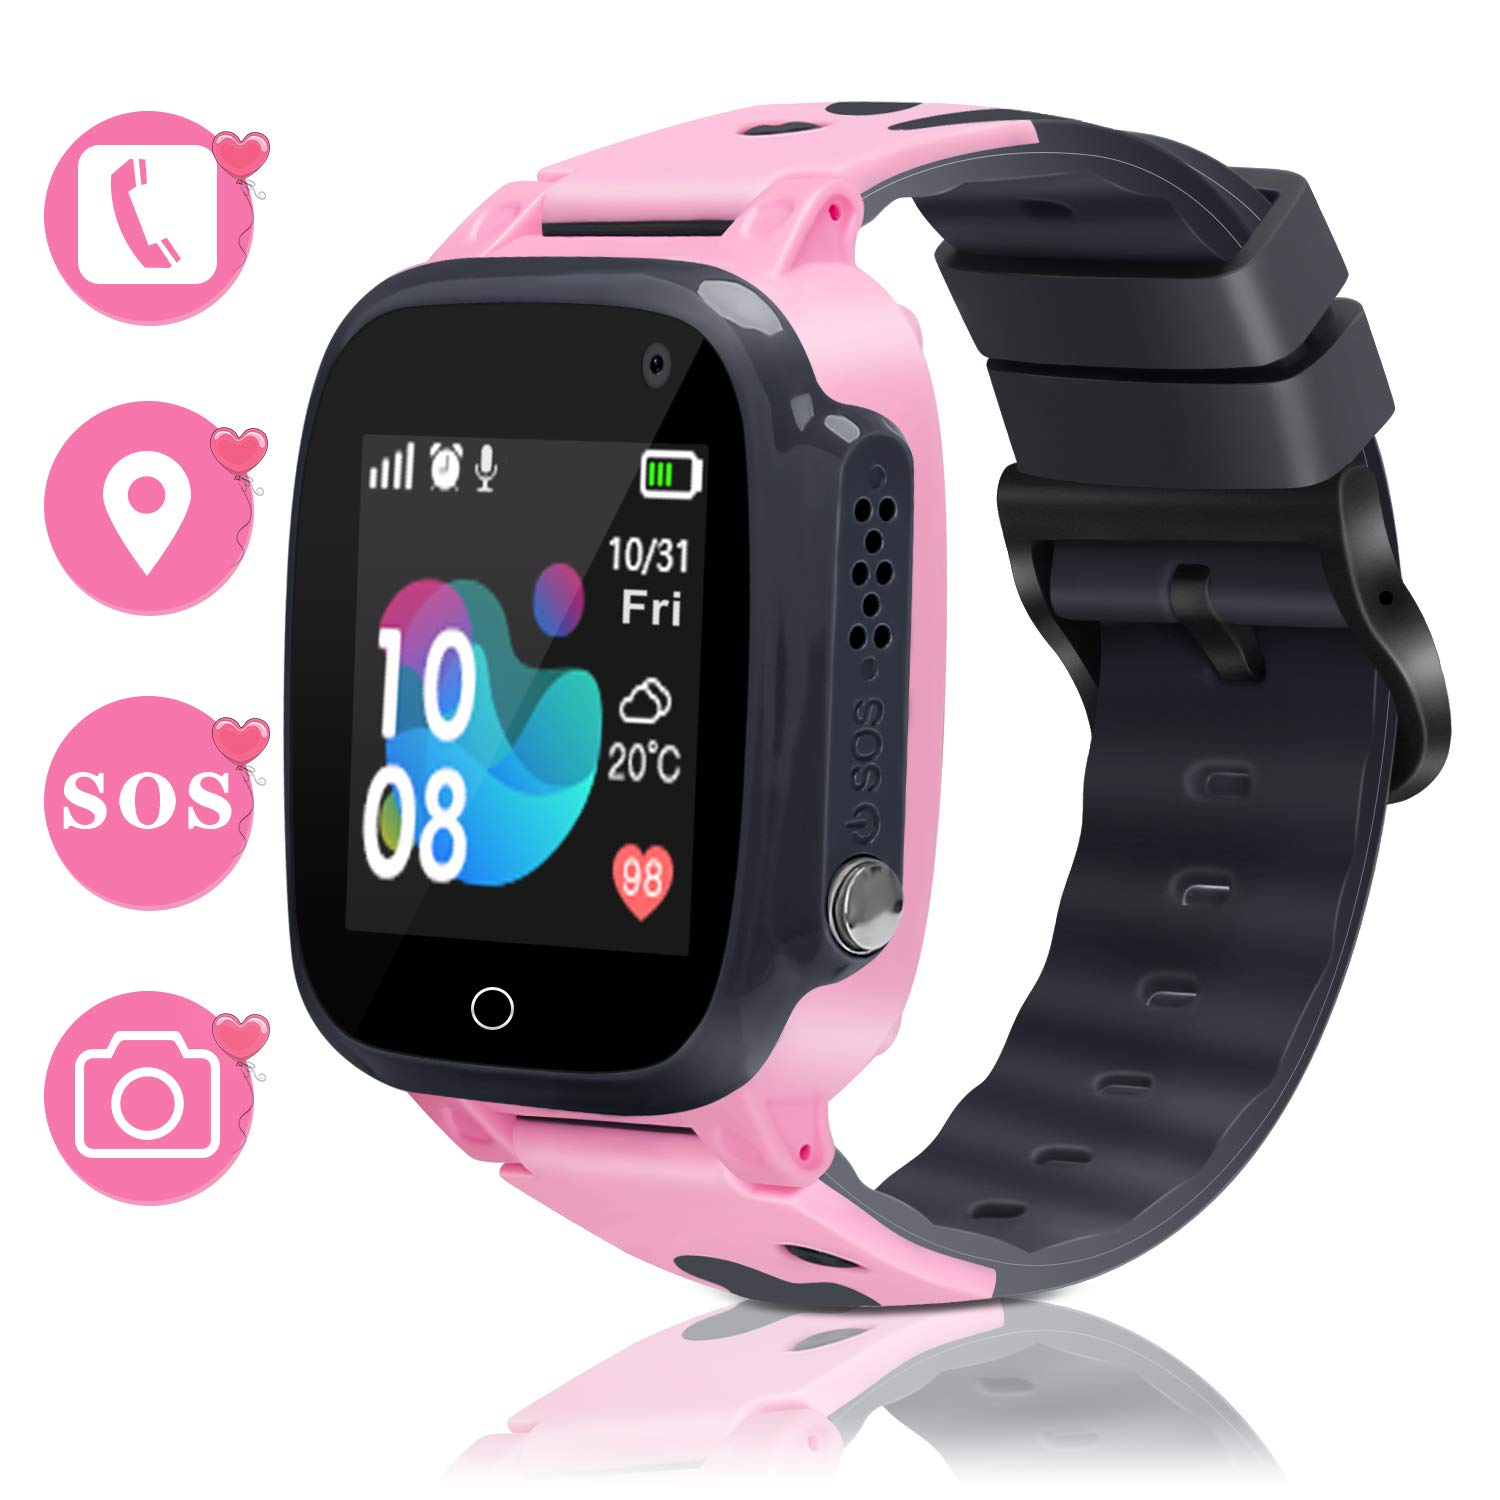 Smart Watch for Kids Smartwatch Phone GPS Watch for Kids Waterproof Watch with SOS Camera Alarm Clock Security Zone Voice Chat Tracker Watch for Kids with Phone Birthday Gifts for Girls Boys Watch